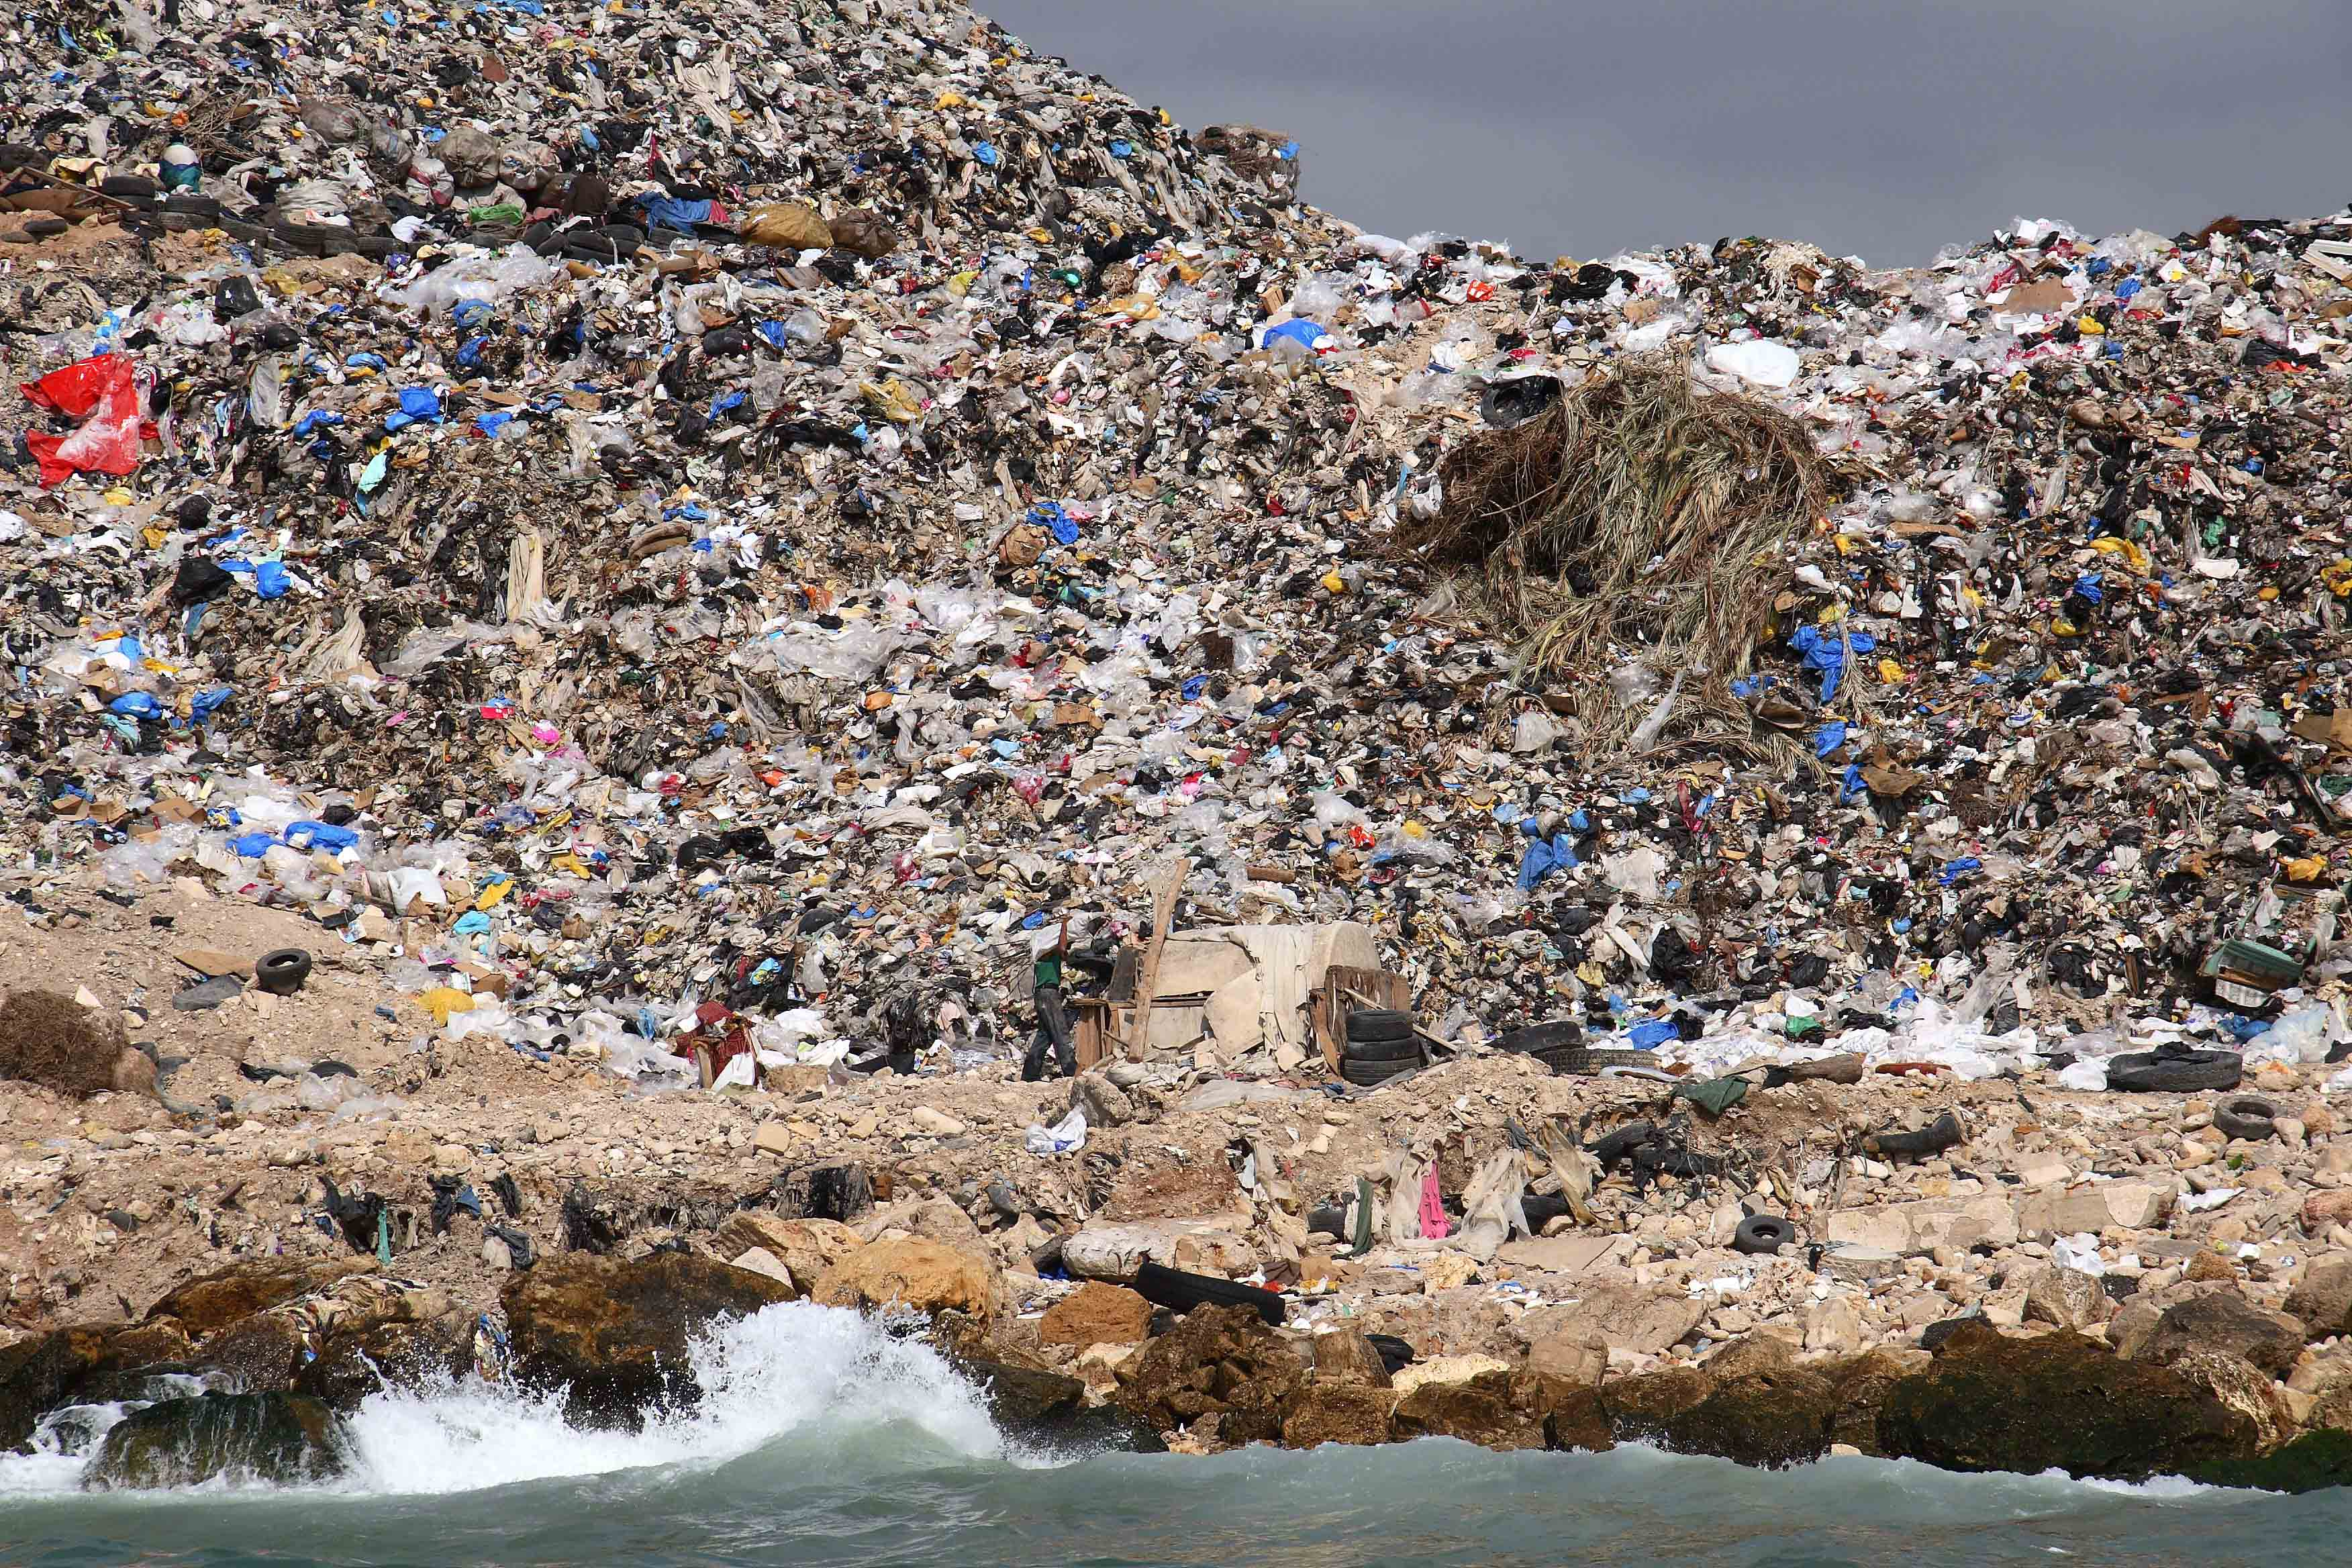 Established in 1975 as a temporary municipal tip, the tip on the edge of Sidon has grown into a four-storey high, 600,000 cubic meters mountain of garbage, soil, concrete debris, hospital waste and occasional dead animals.